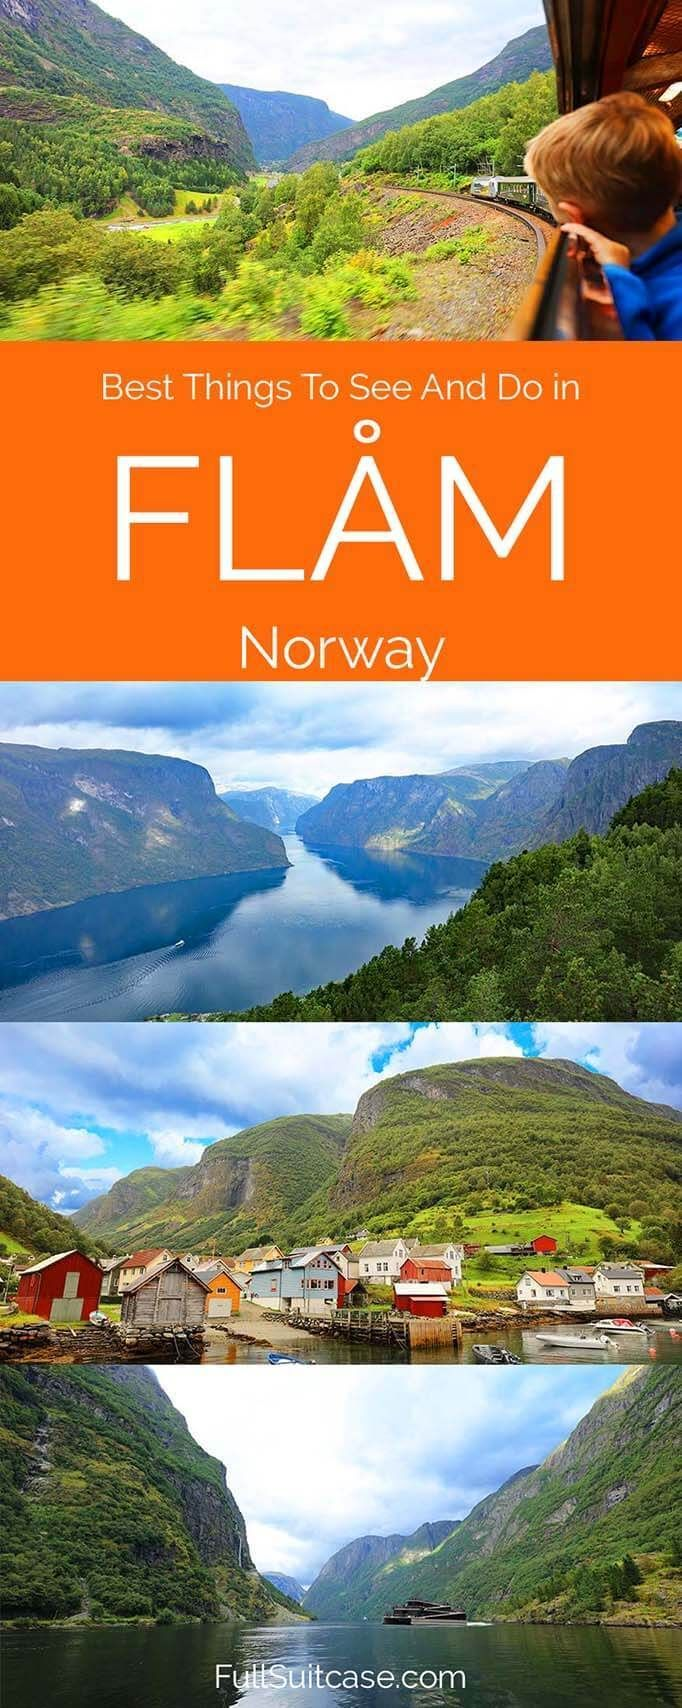 Best things to see and do in Flam Norway, includes suggested one day itinerary. #Flam #Norway